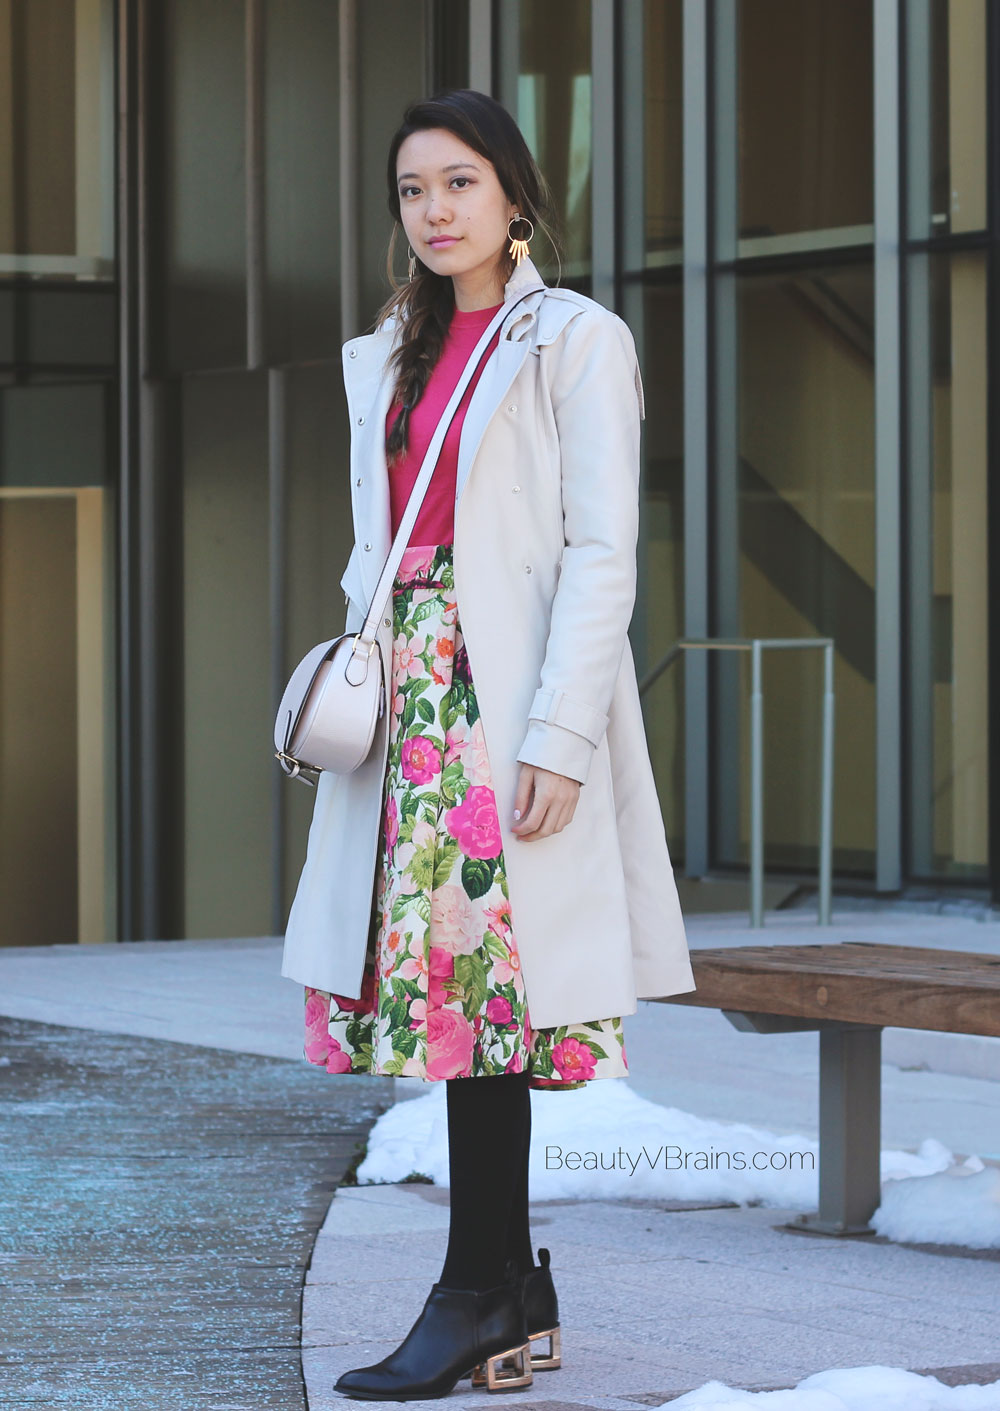 Spring outfit inspo trench coat and floral midi skirt